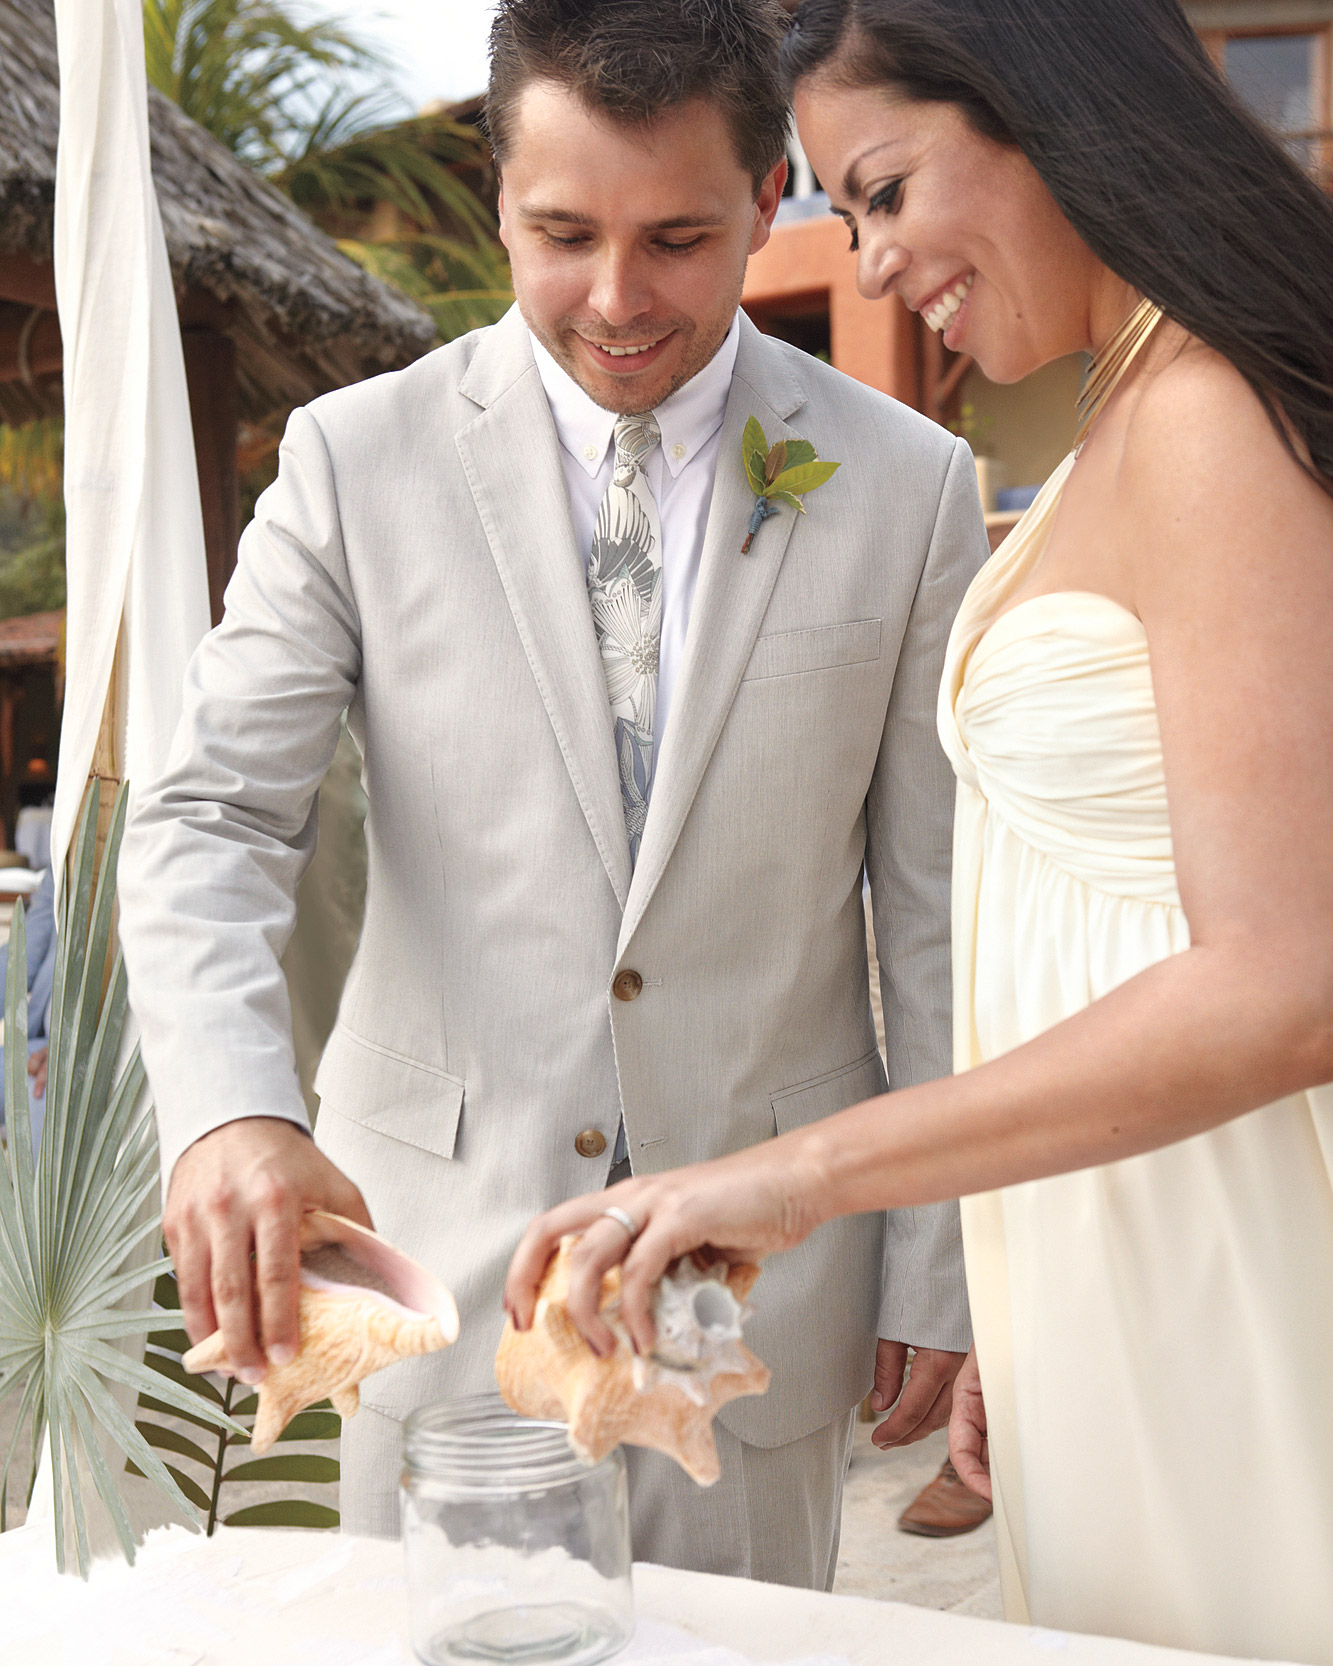 rw-mexico-bride-groom-mwds107779.jpg